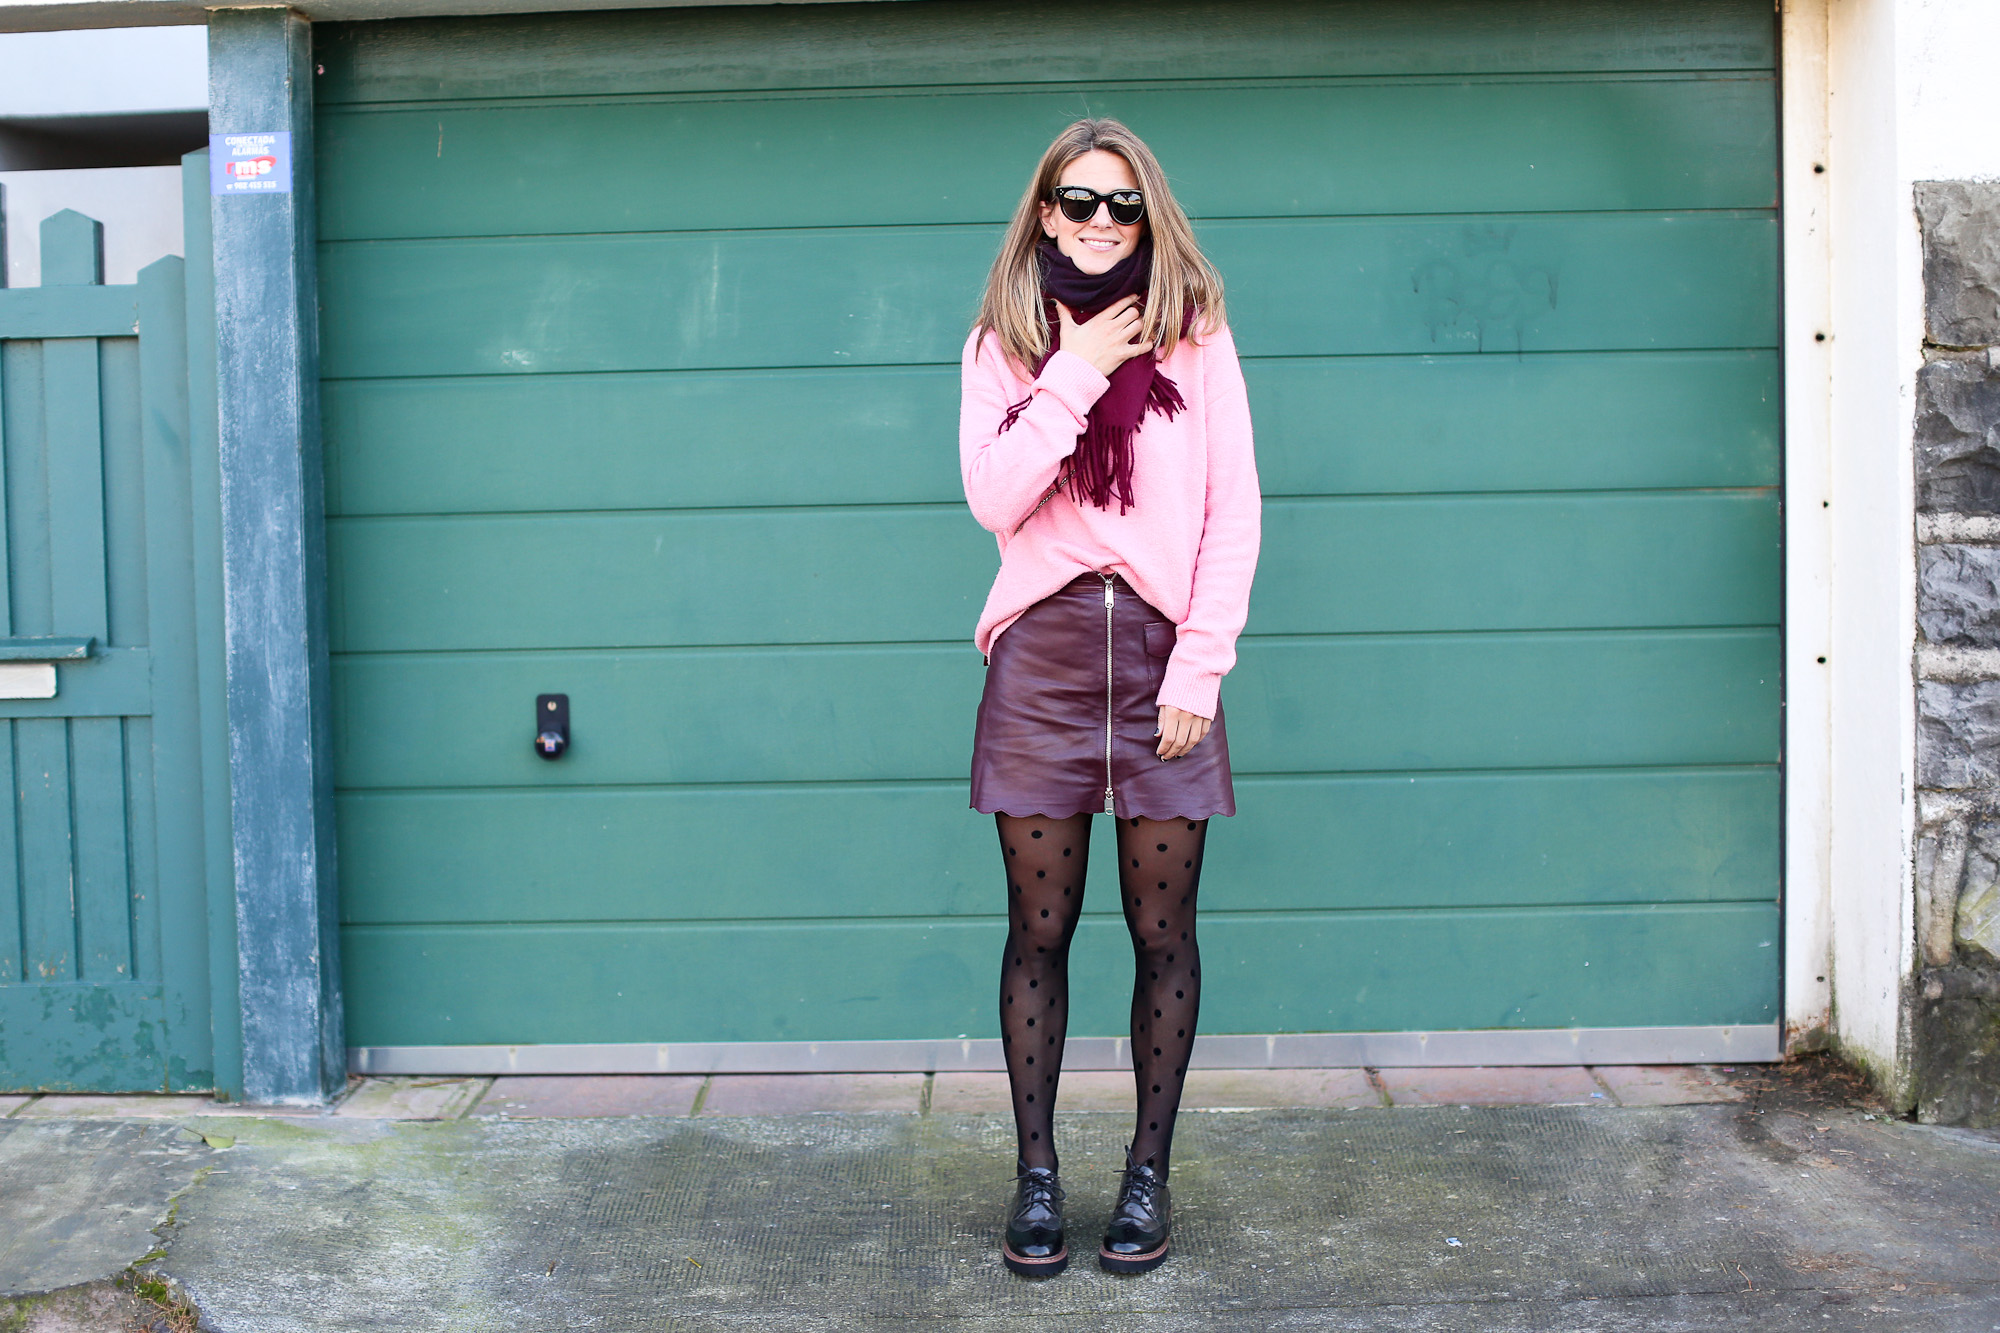 Clochet_streetstyle_fashionblogger_Max&Co_leatherminiskirt_andtherstories_pinksweater_celinesunglasses